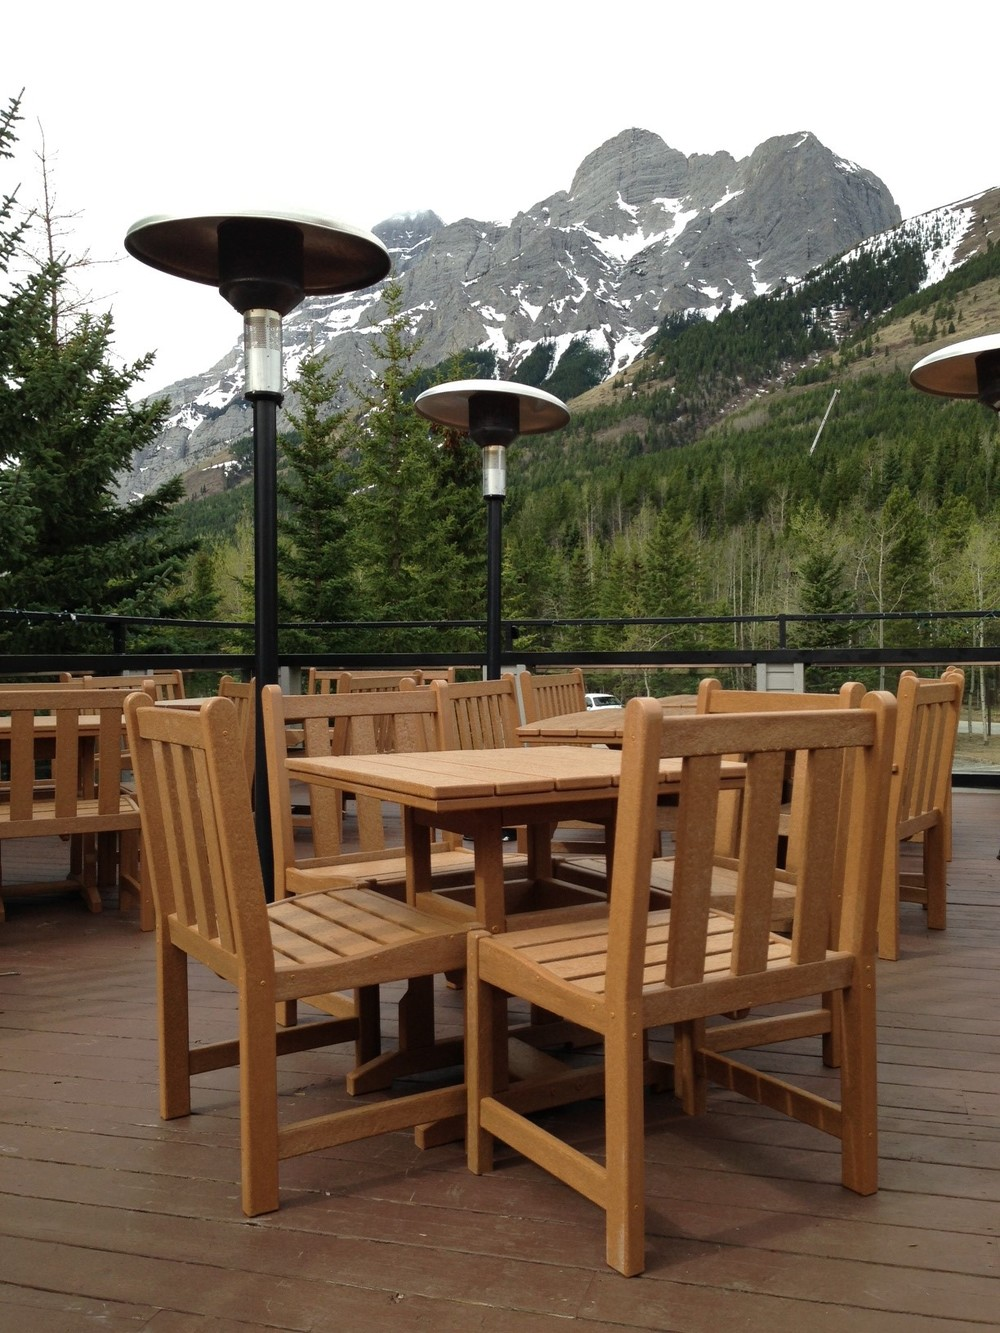 Gallery — Patio Frontiers